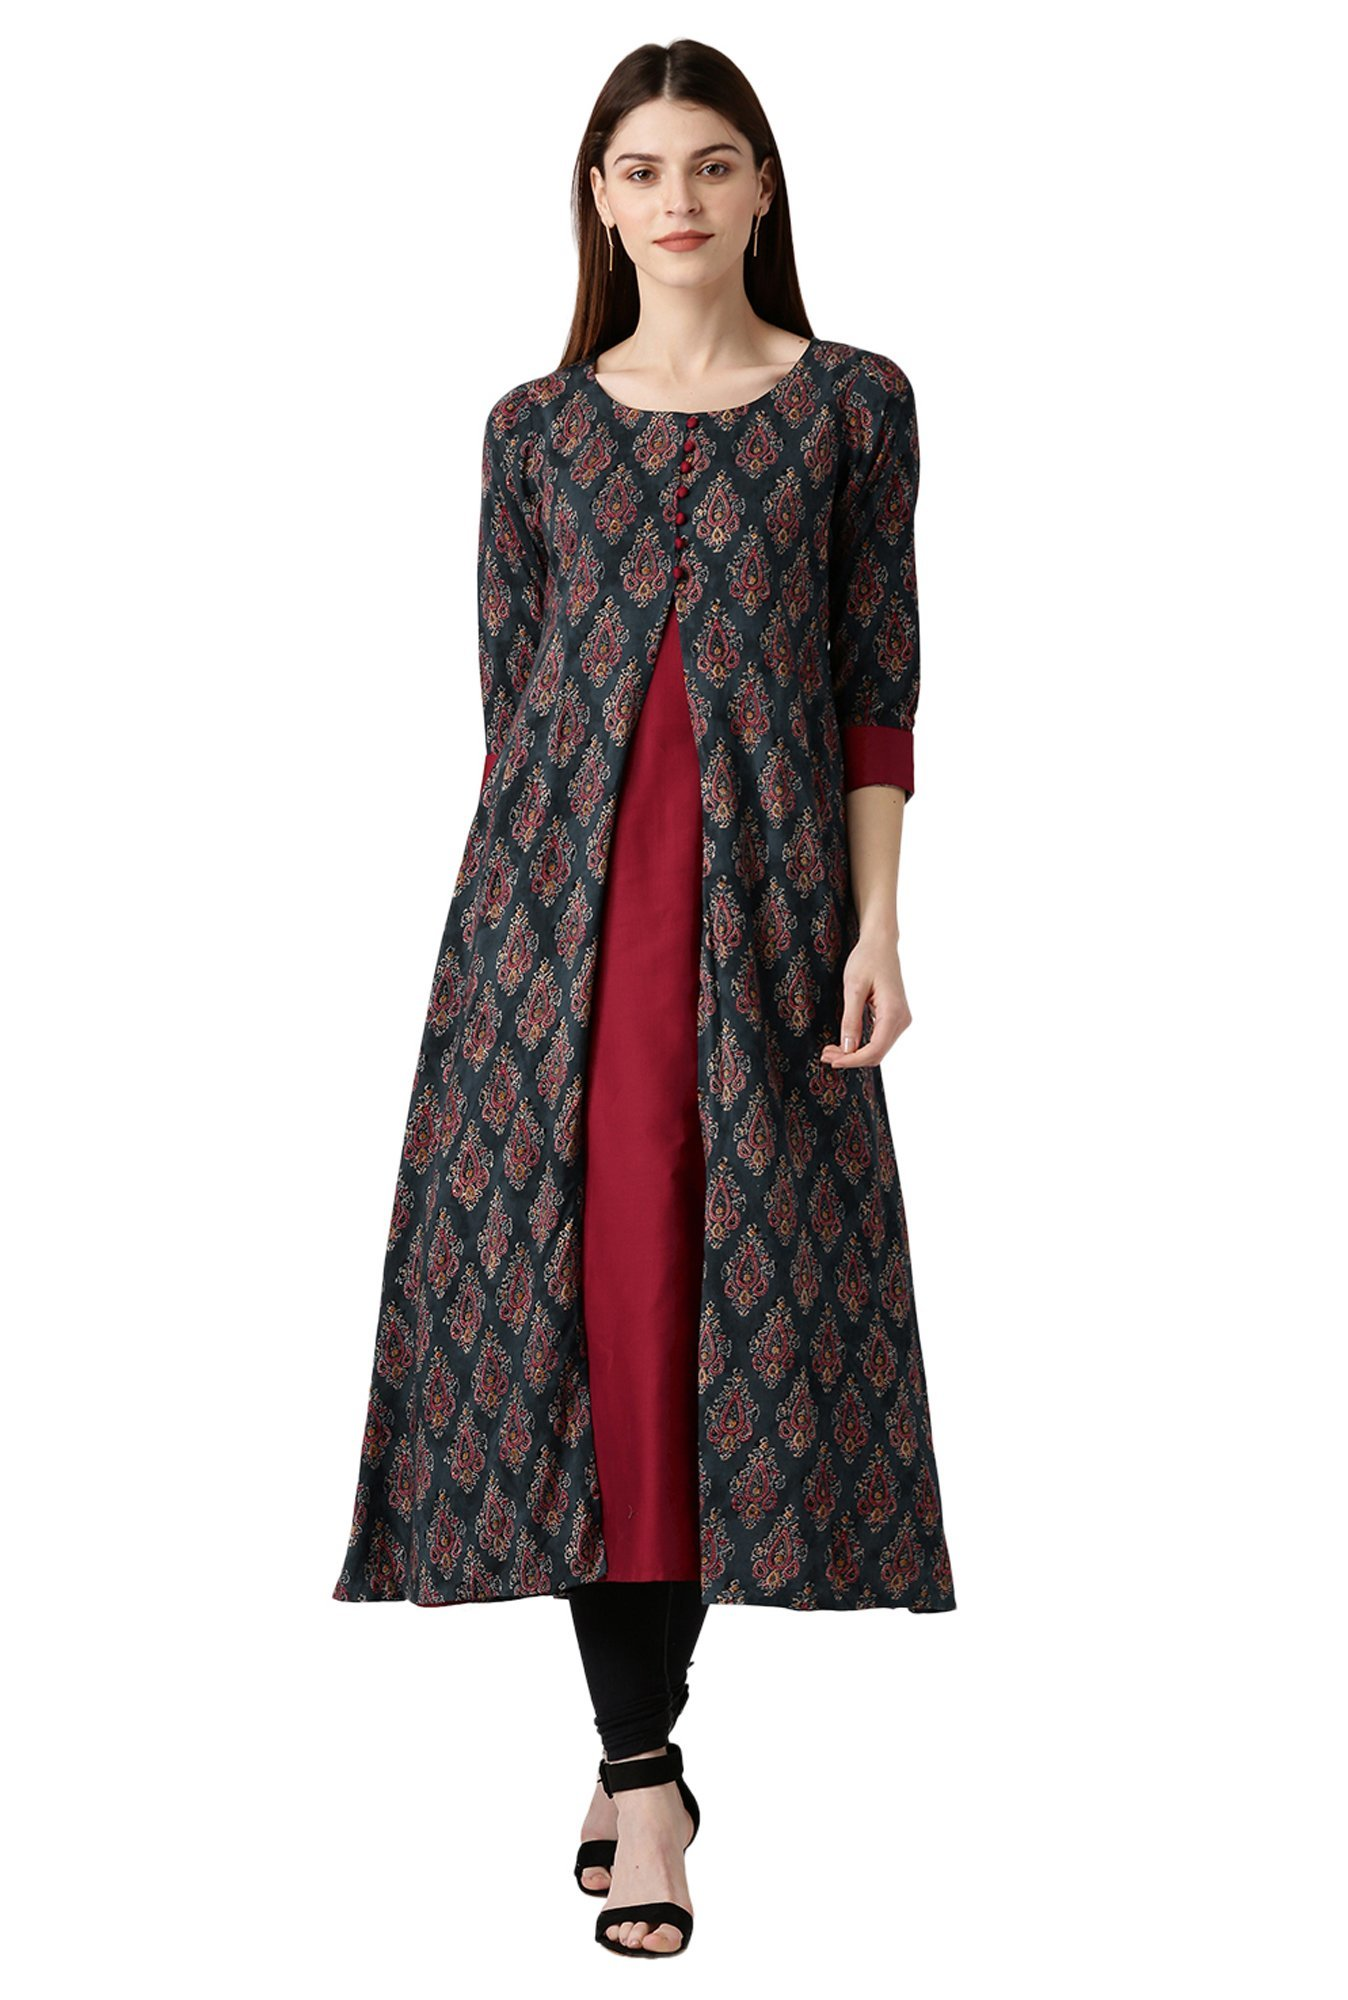 Libas Black & Maroon Printed Cotton A-Line Kurta